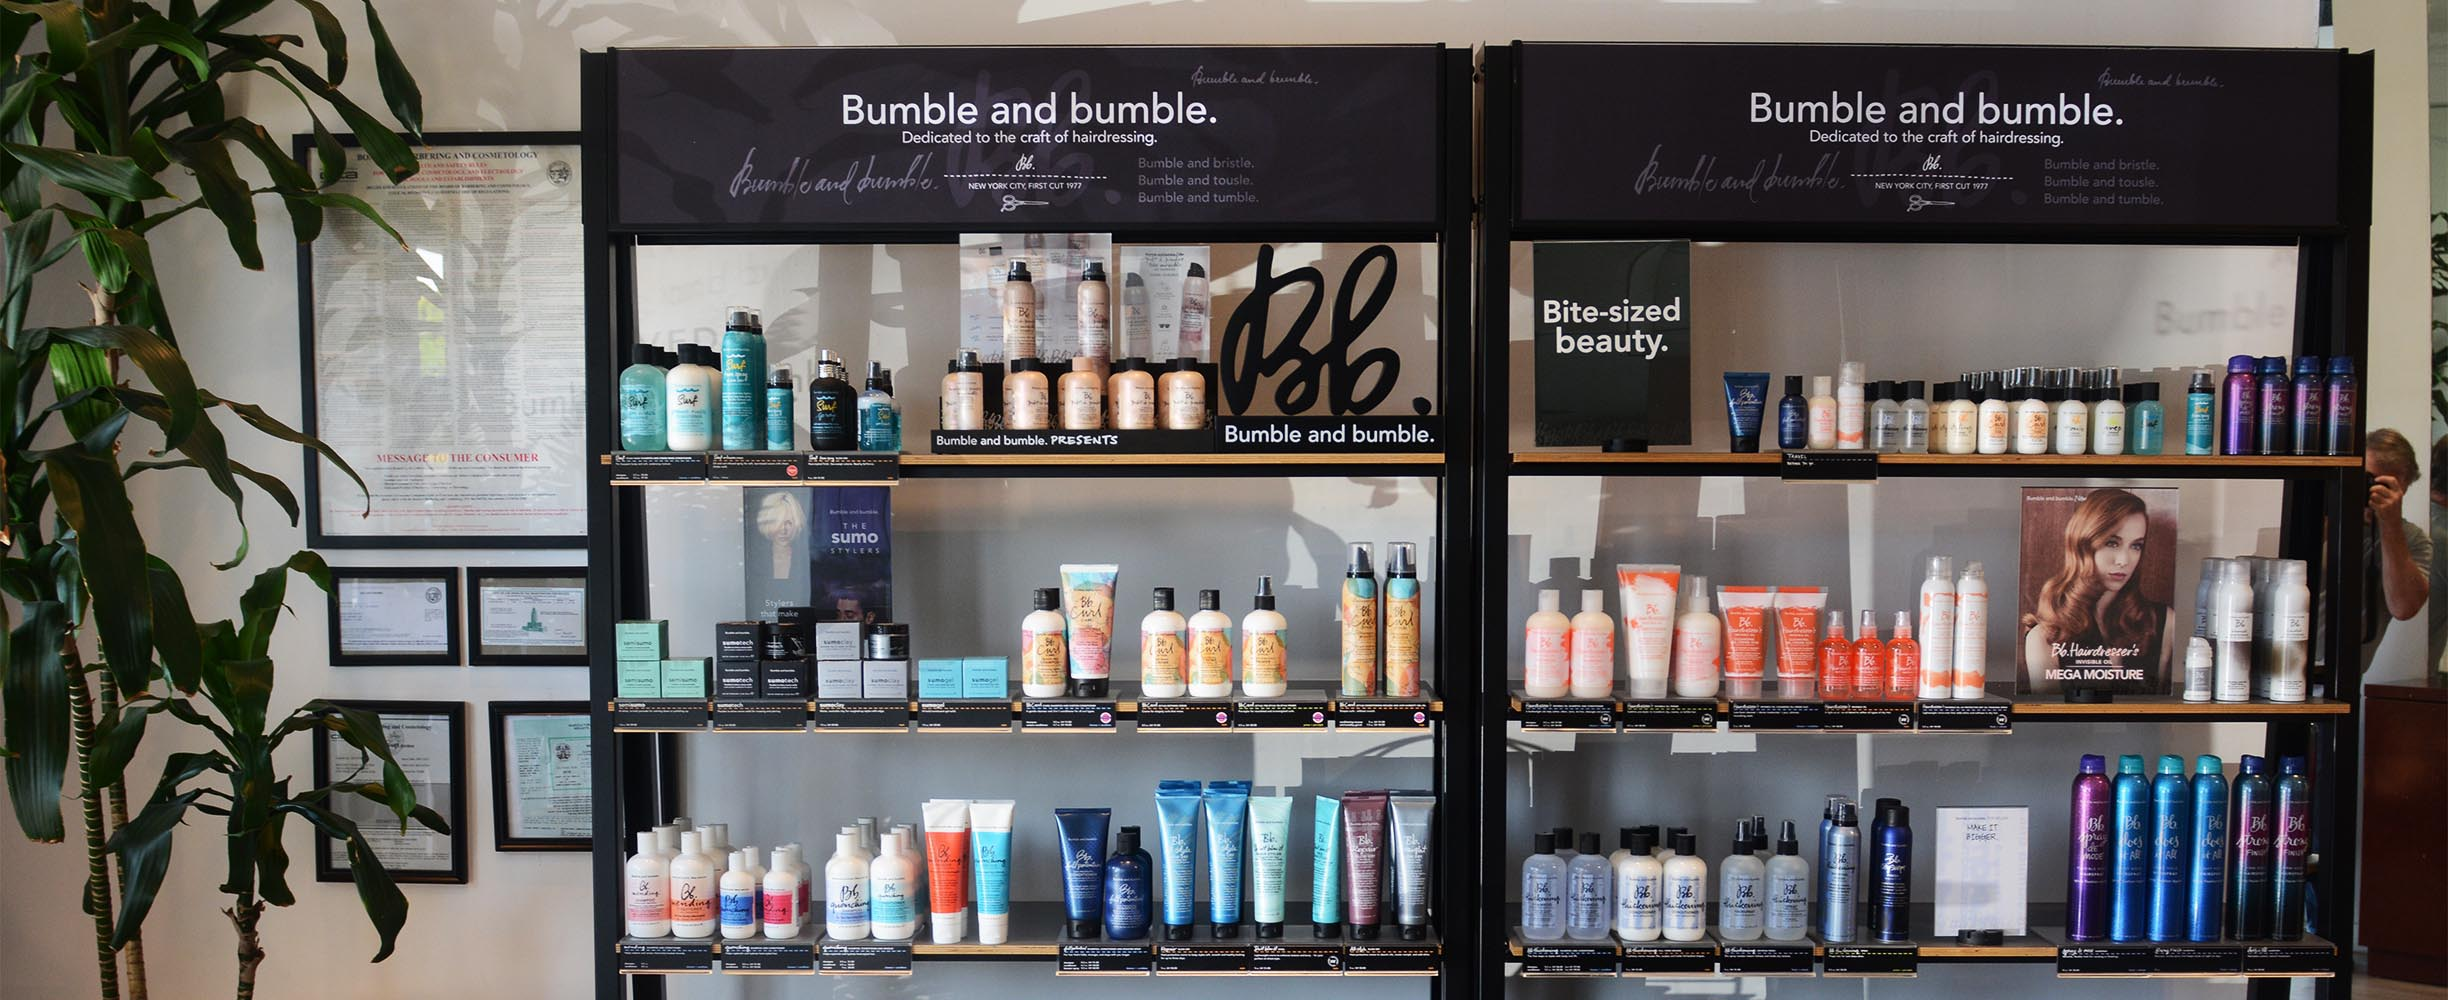 To provide a selection of the best hair products, shampoos and conditioners for you is one of pour goals.